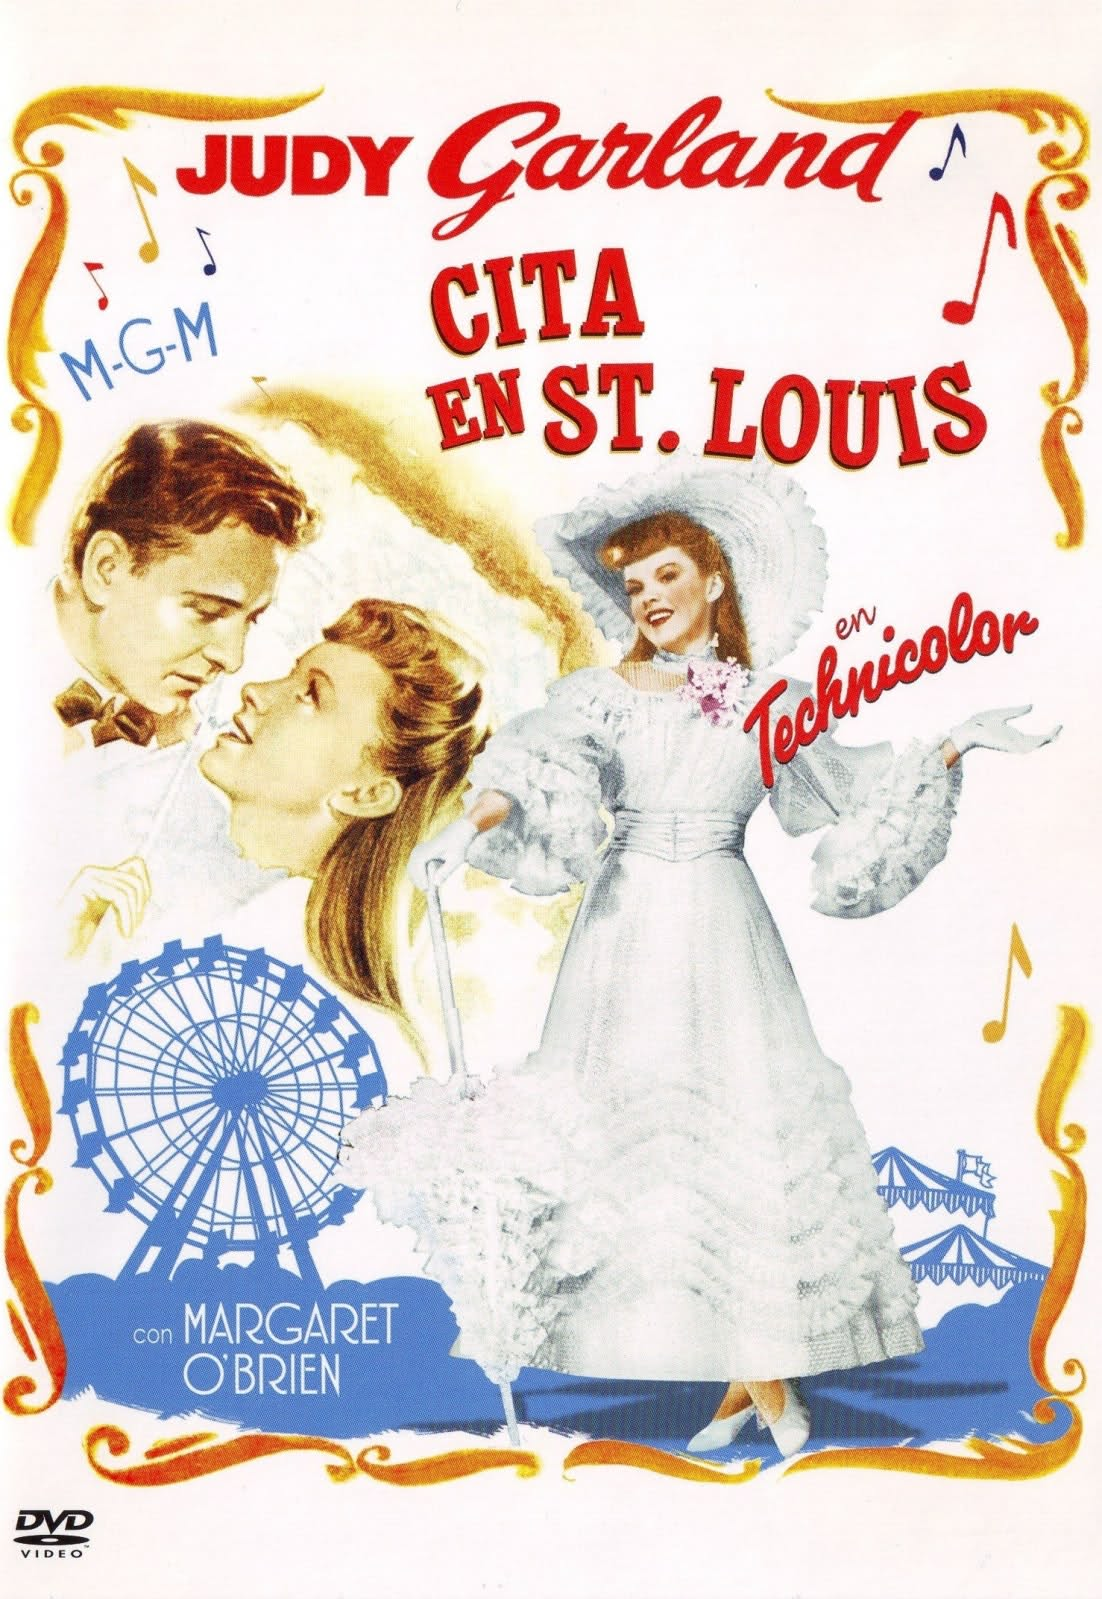 Cita en San Luis (Meet Me in St. Louis)